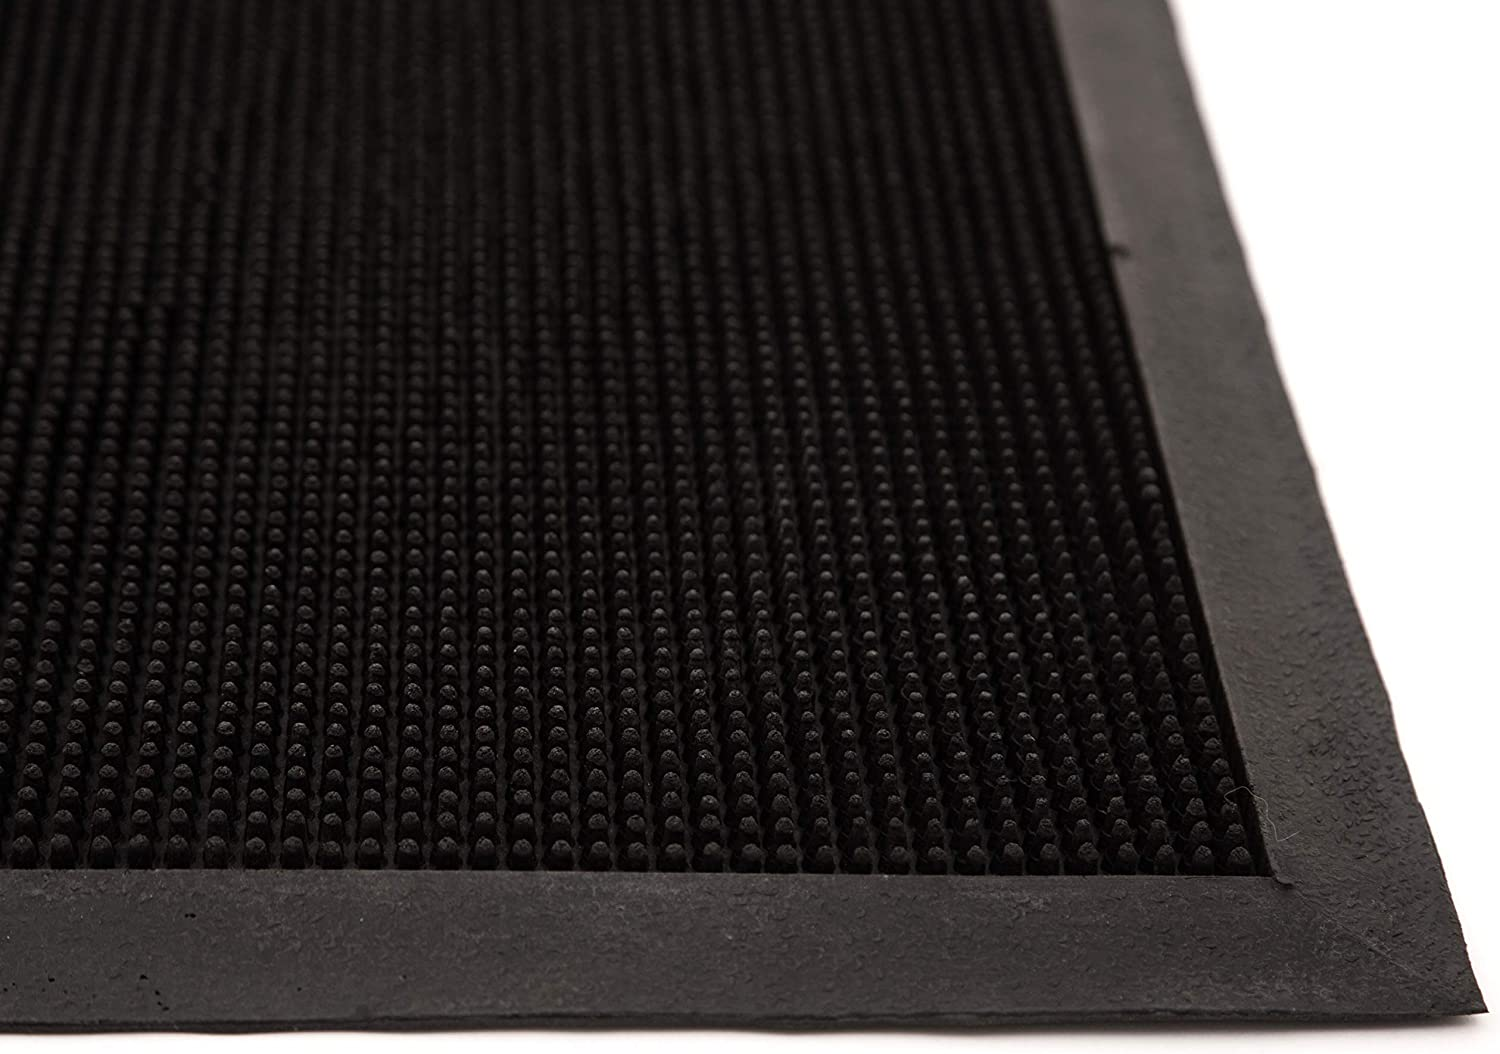 Incstores Bristle Mat 3 X5 Outdoor Indoor Rubber Entrance Mat For Businesses Hallways Schools General Purpose Utility Amazon Ca Home Kitchen